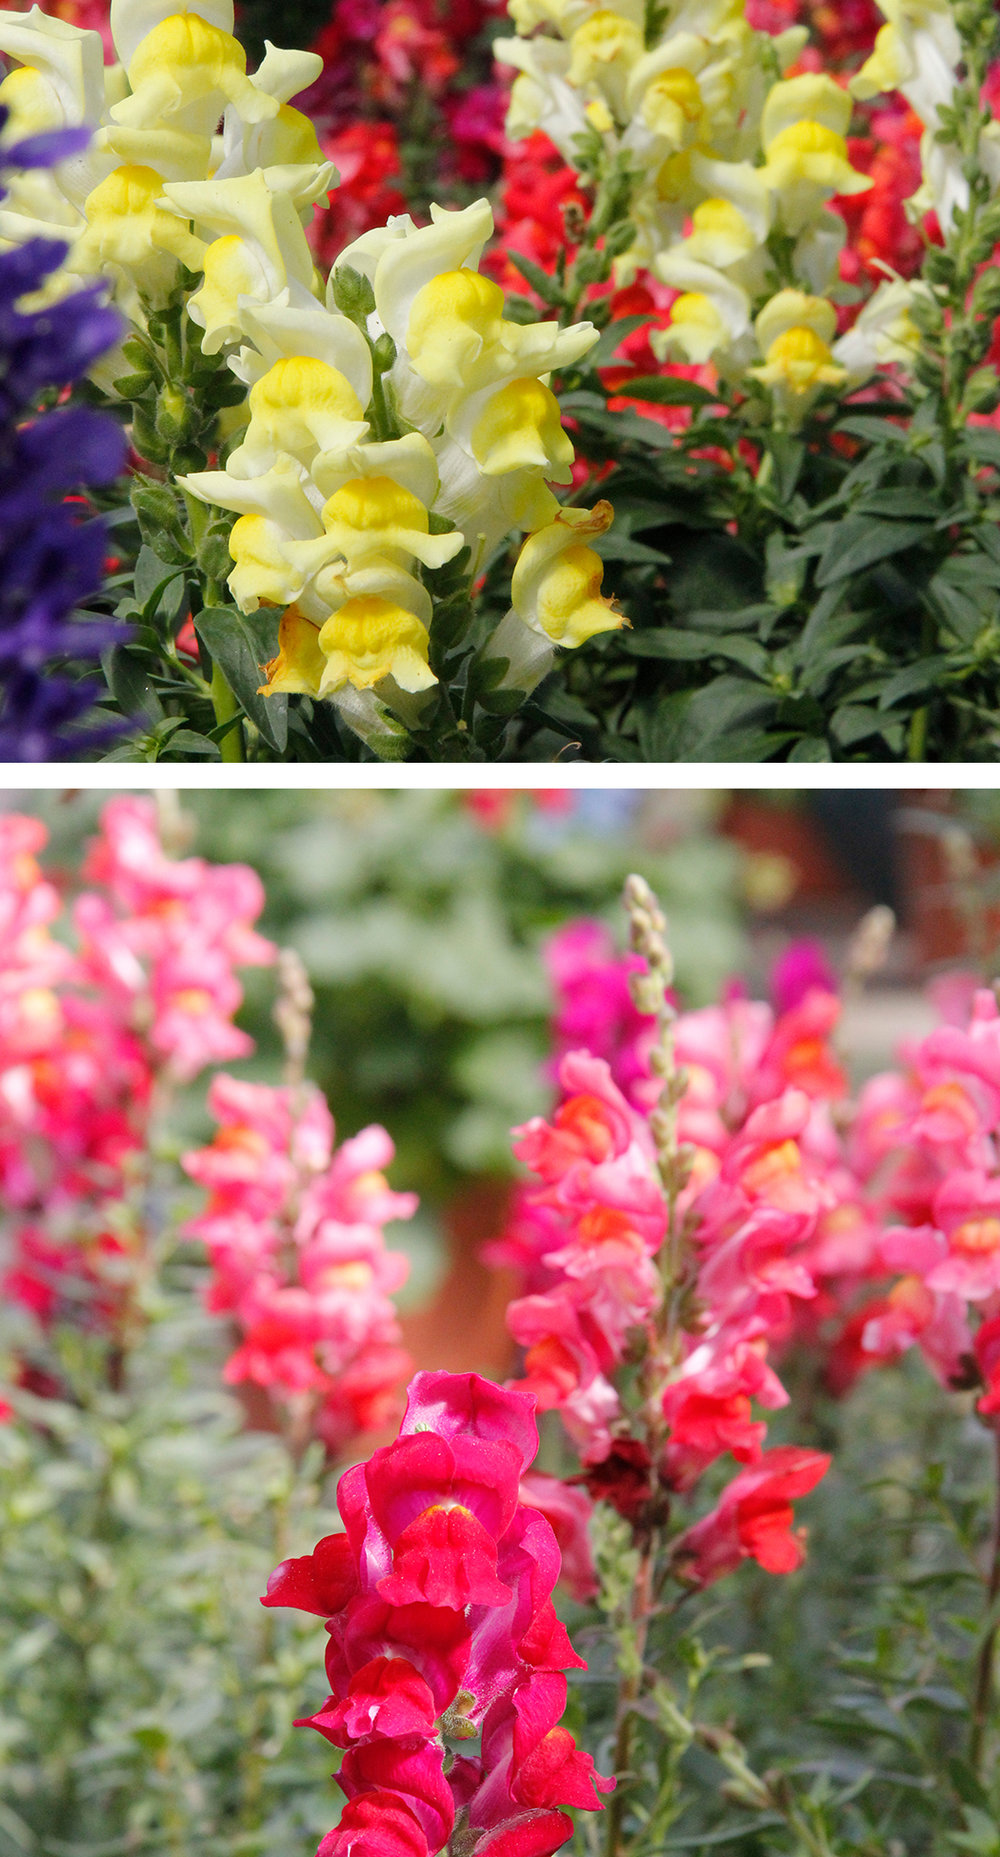 "Snapdragons: Not only do snapdragons add color and character to the garden, but the flowers make a gorgeous addition to bouquets for indoor arrangements.Why Grow Them? Snapdragon puppet shows are a favorite pastime for the Burke family, move their ""mouths"" and make them talk! -"